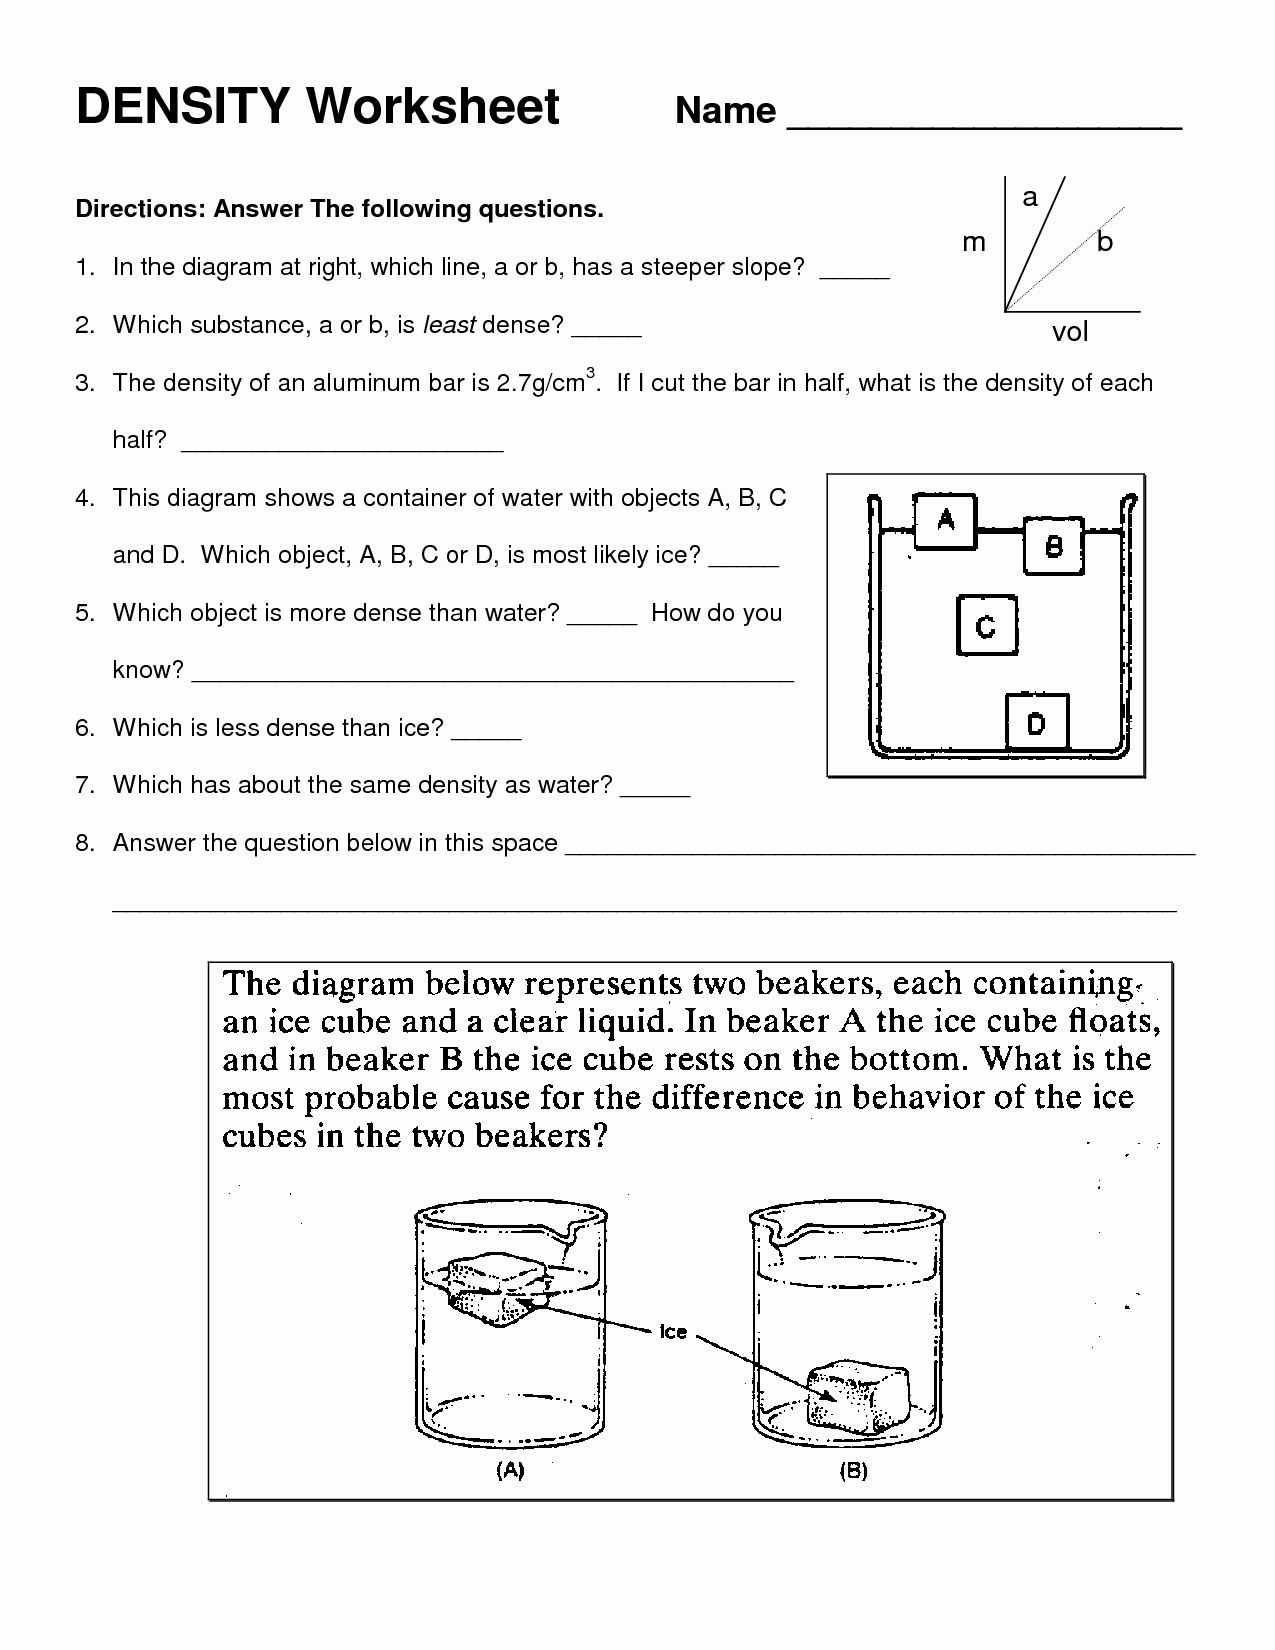 Science 8 Density Calculations Worksheet Luxury Science 8 Density Calculations Worksheet Answers